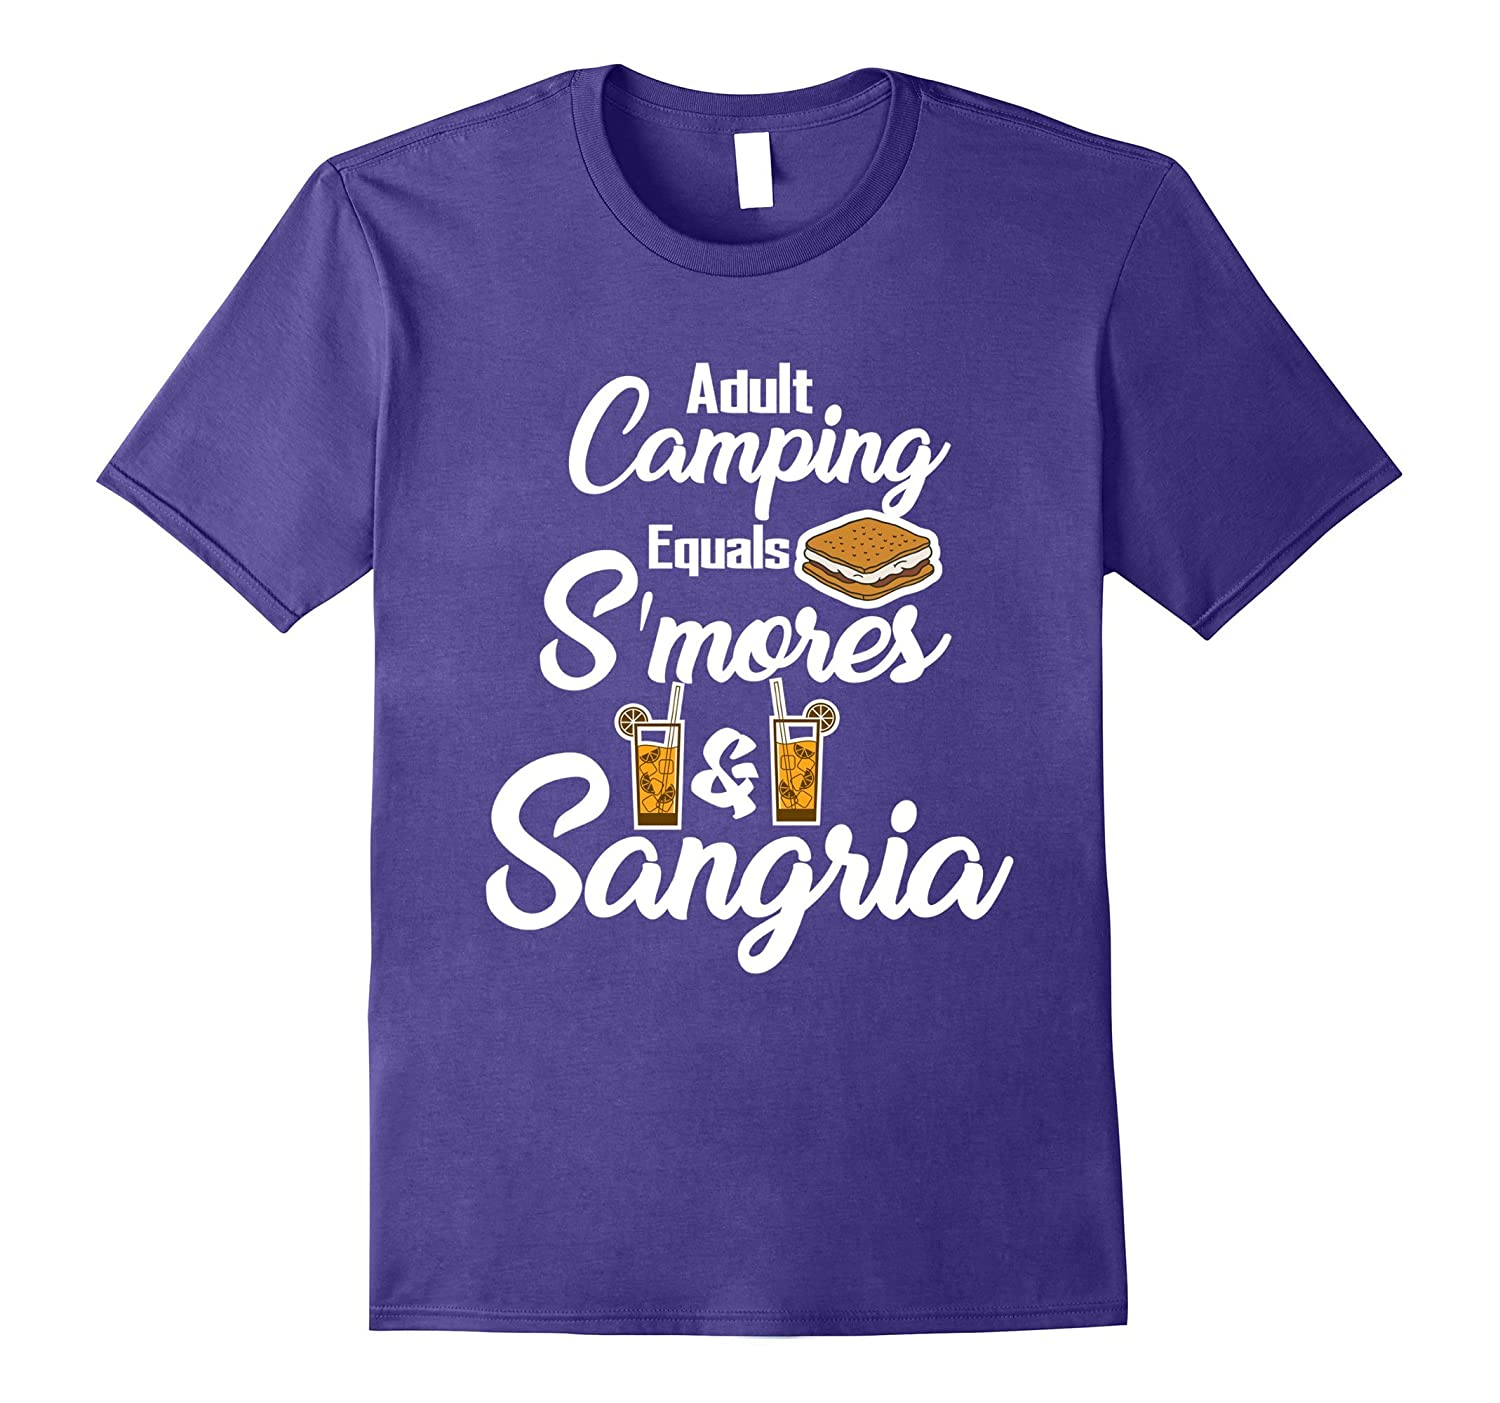 Adult Camping Equals S'mores & Sangria Funny T-Shirt-TH